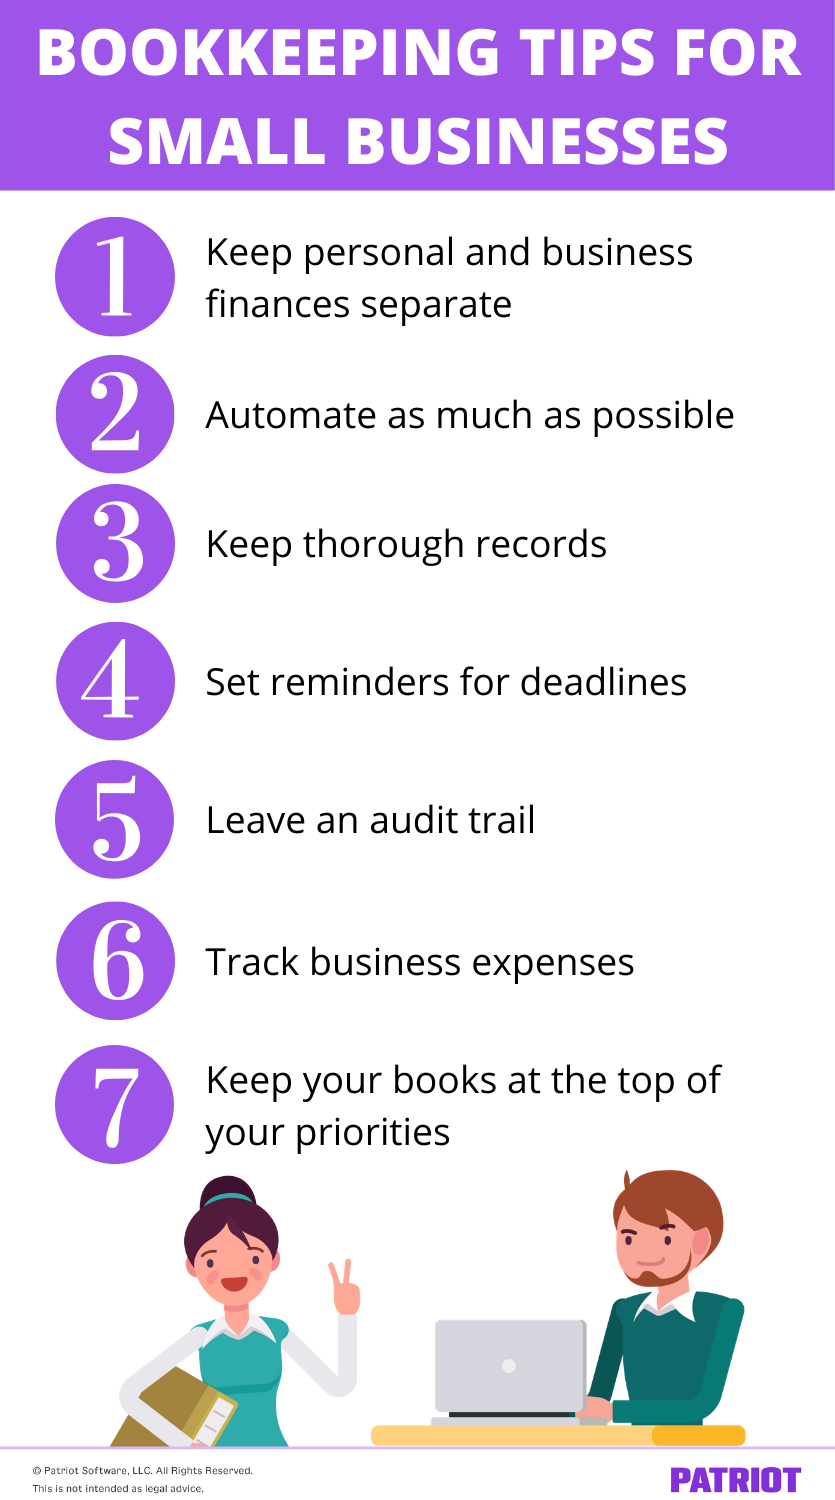 list of bookkeeping tips for small businesses with illustration of man on computer and woman holding accounting books